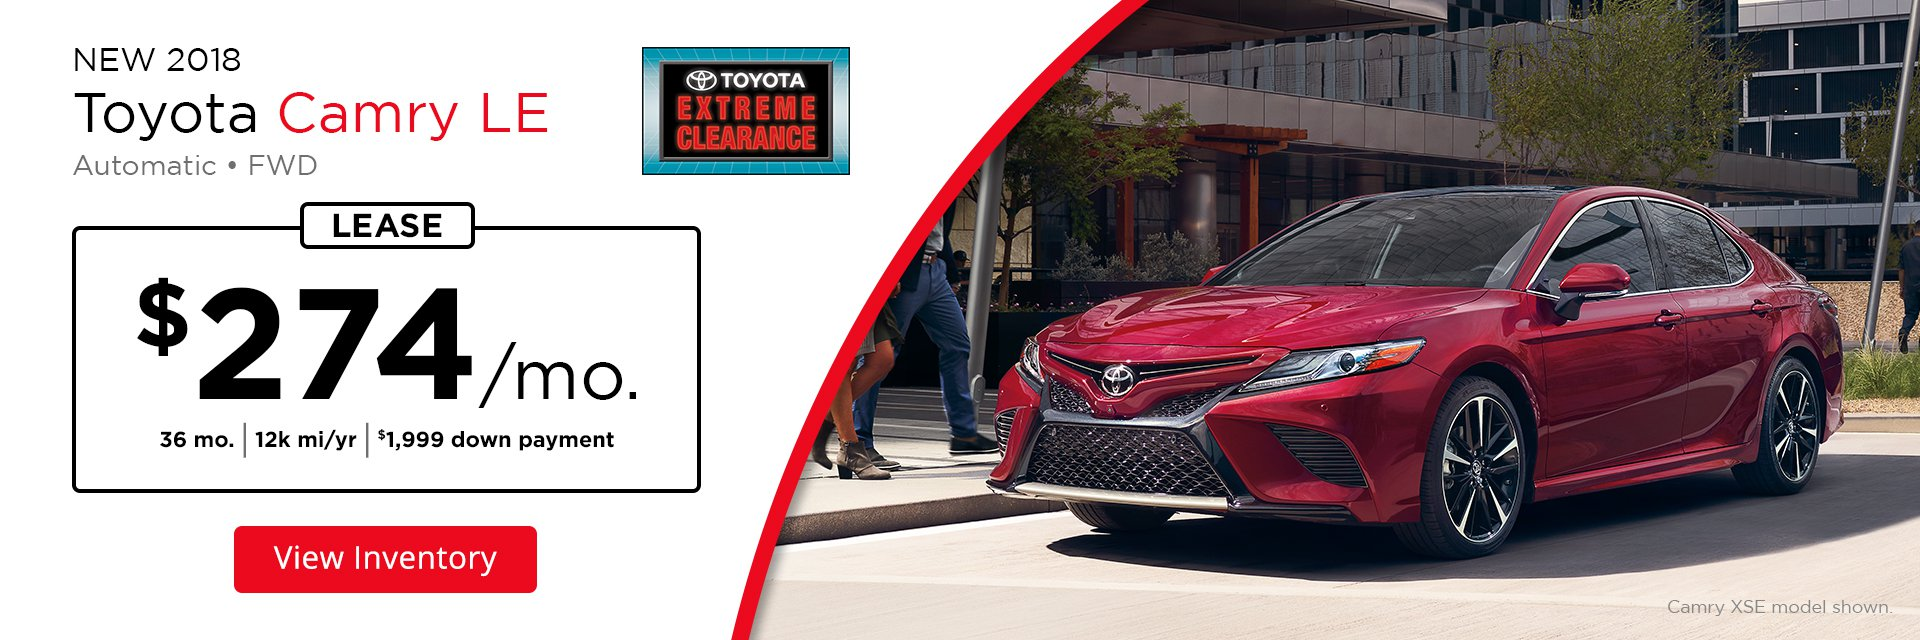 Prime Toyota Saco Dealer Serving Portland, Biddeford ...